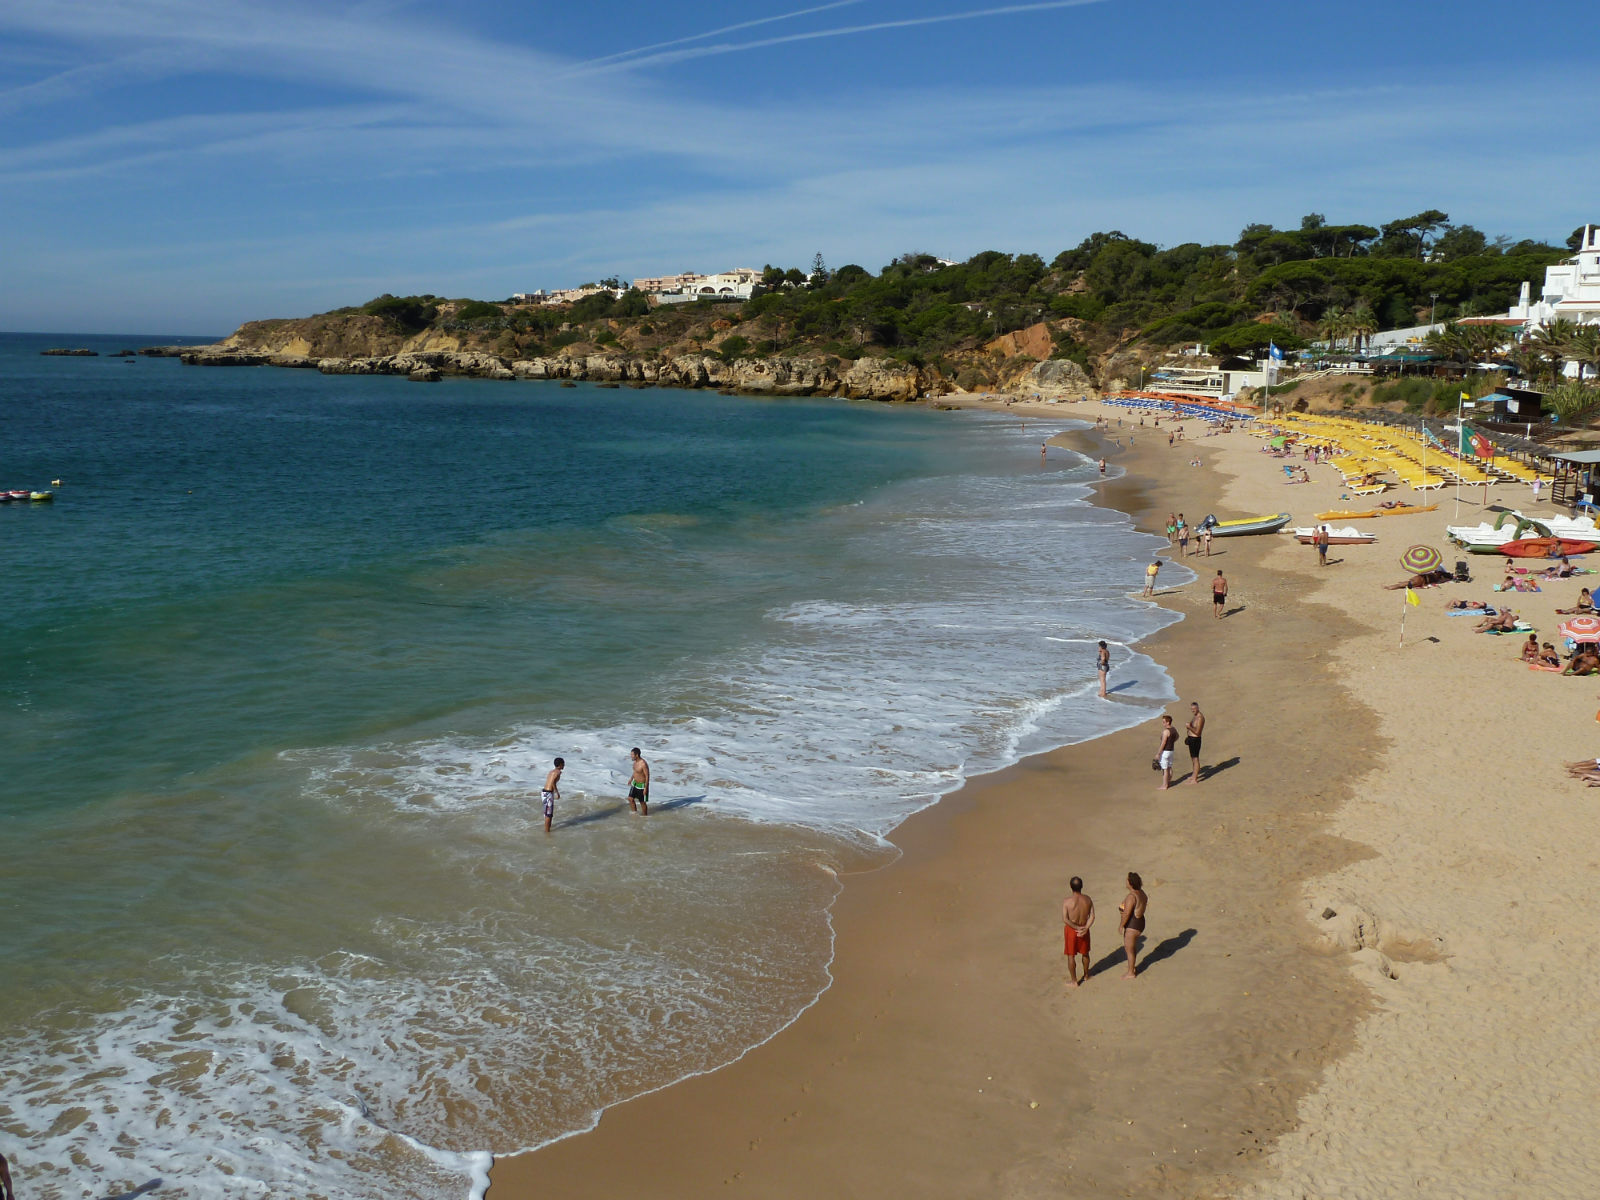 The very pretty, colourful & lively Praia Oura beach is worthy of a visit.